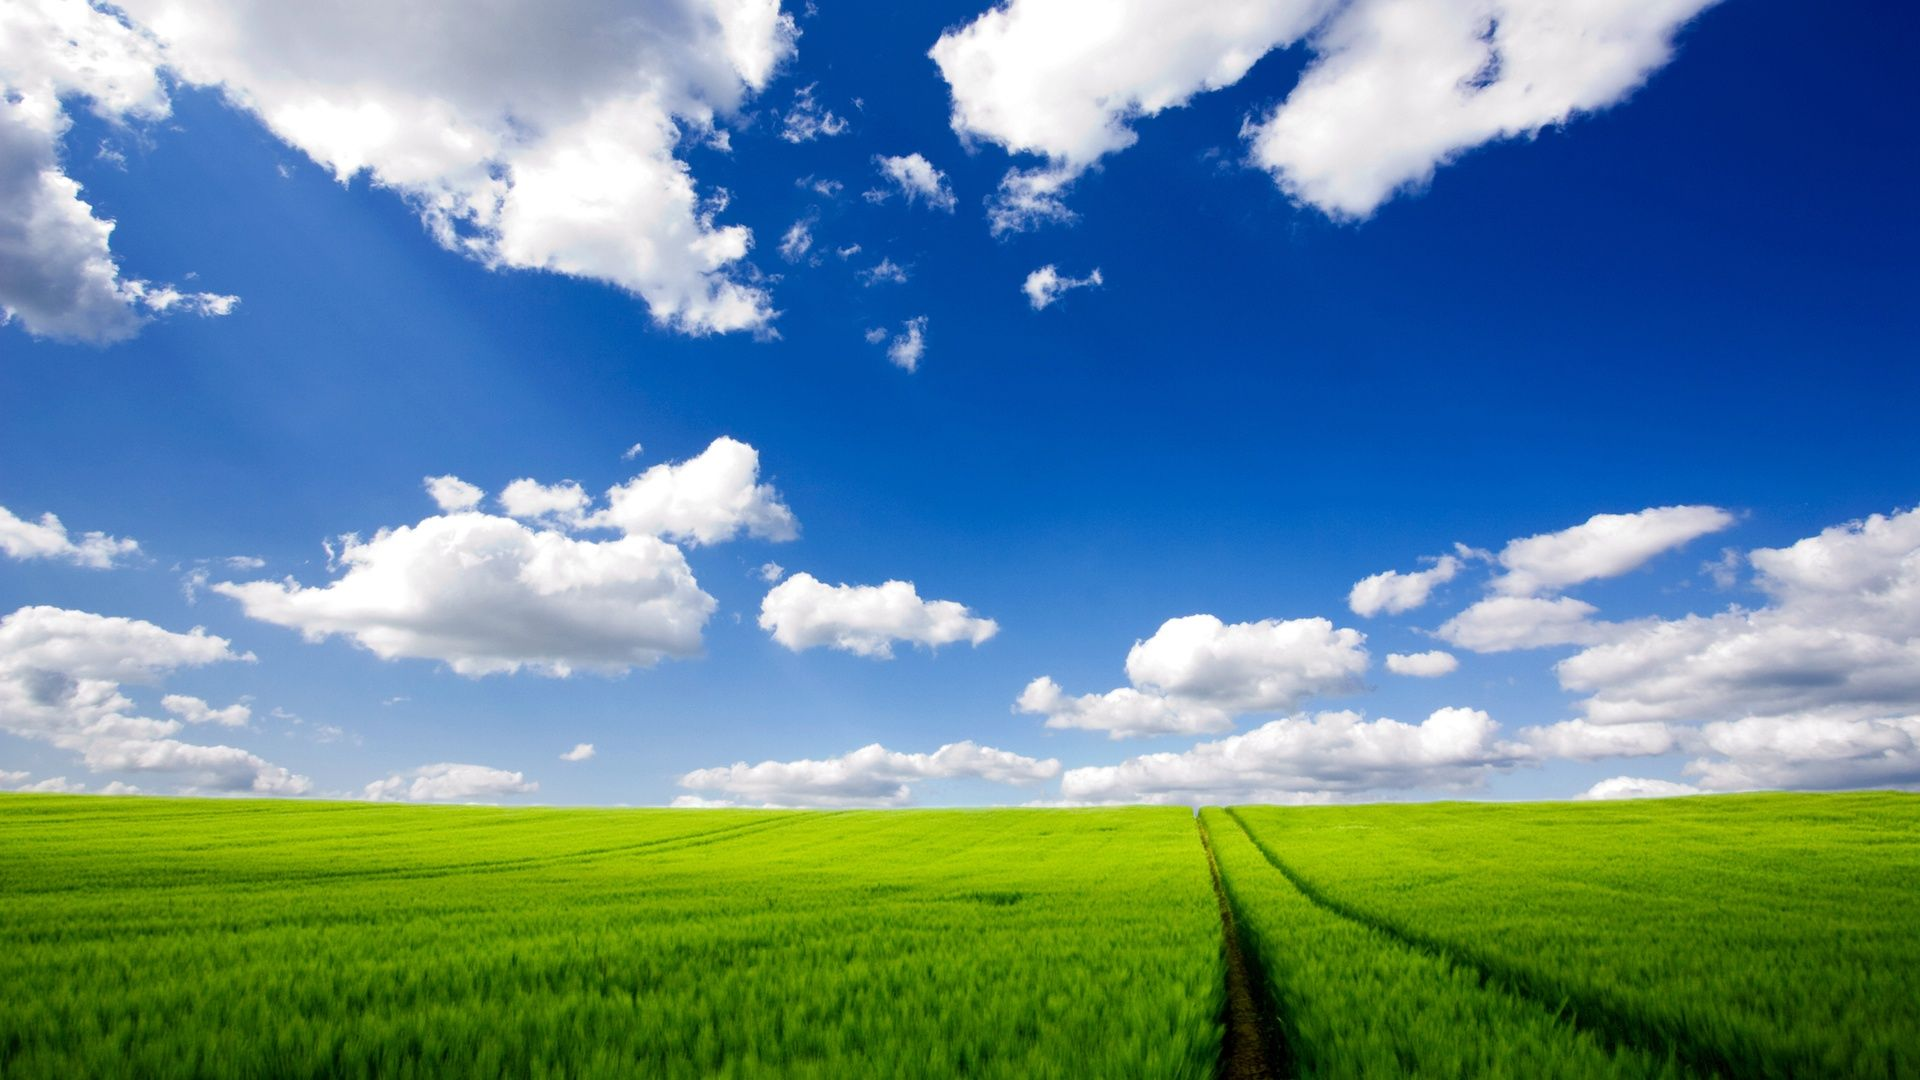 windows xp bliss wallpaper 1920a—1080 windows xp original wallpapers 47 wallpapers